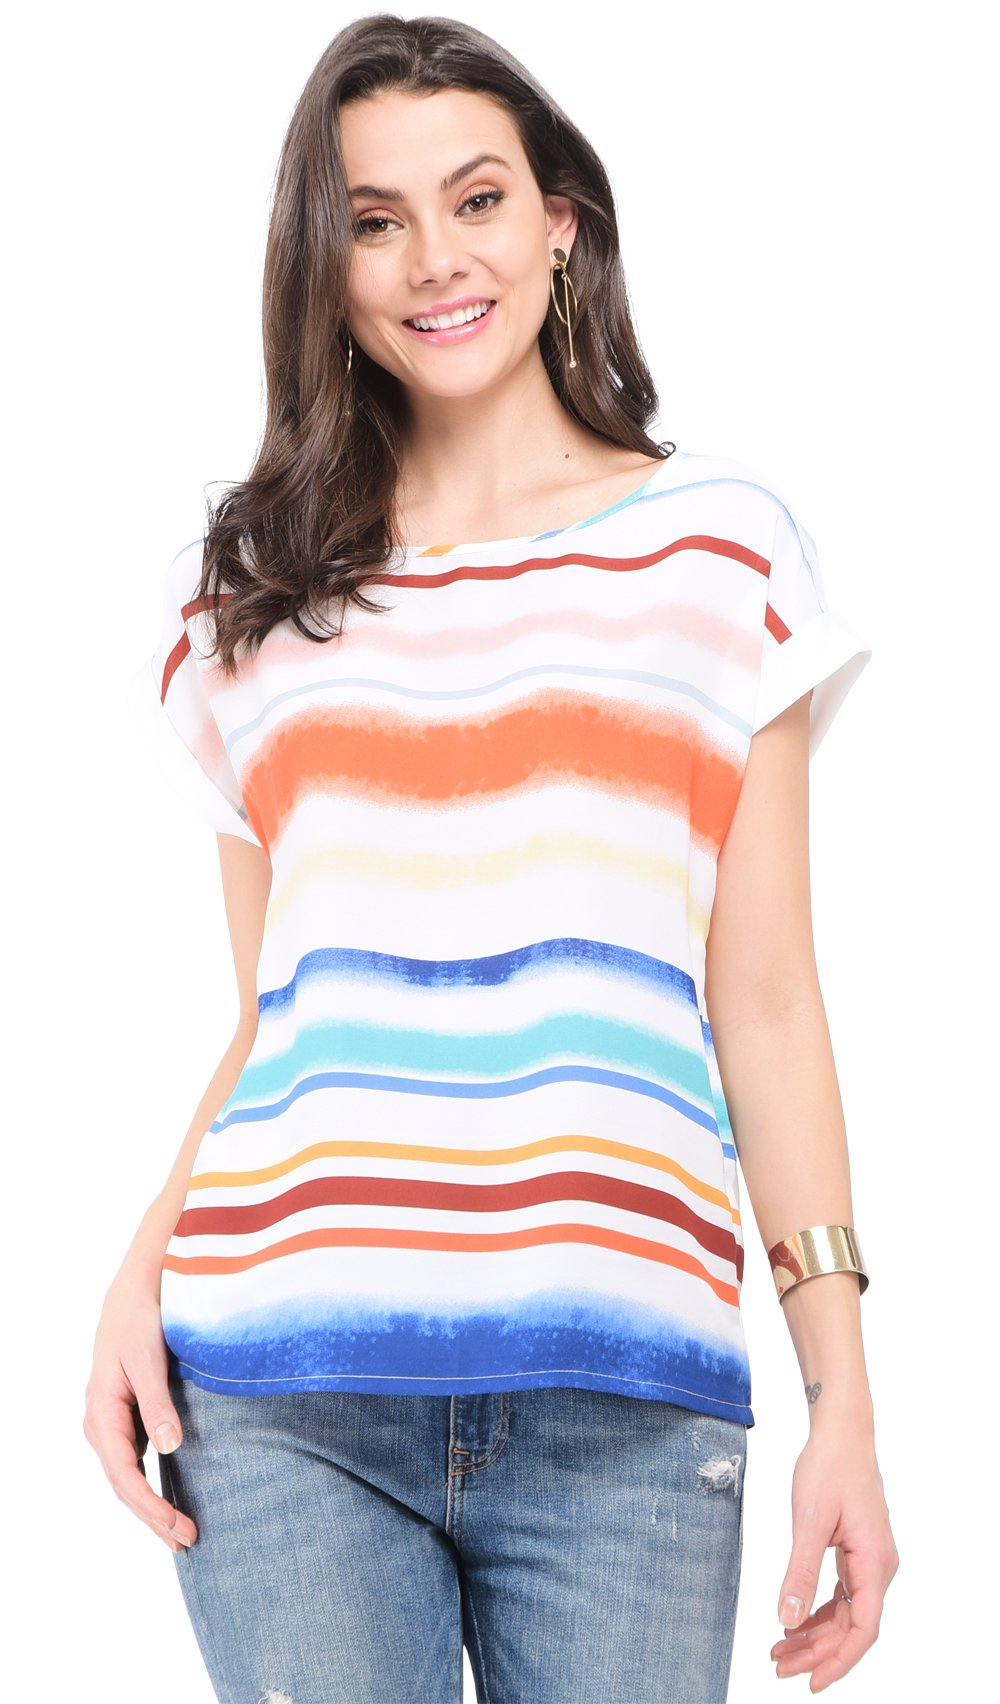 ROUND COLLAR TOP WITH MULTI-COLORS PRINT AND SHORT SLEEVES WITH HEM